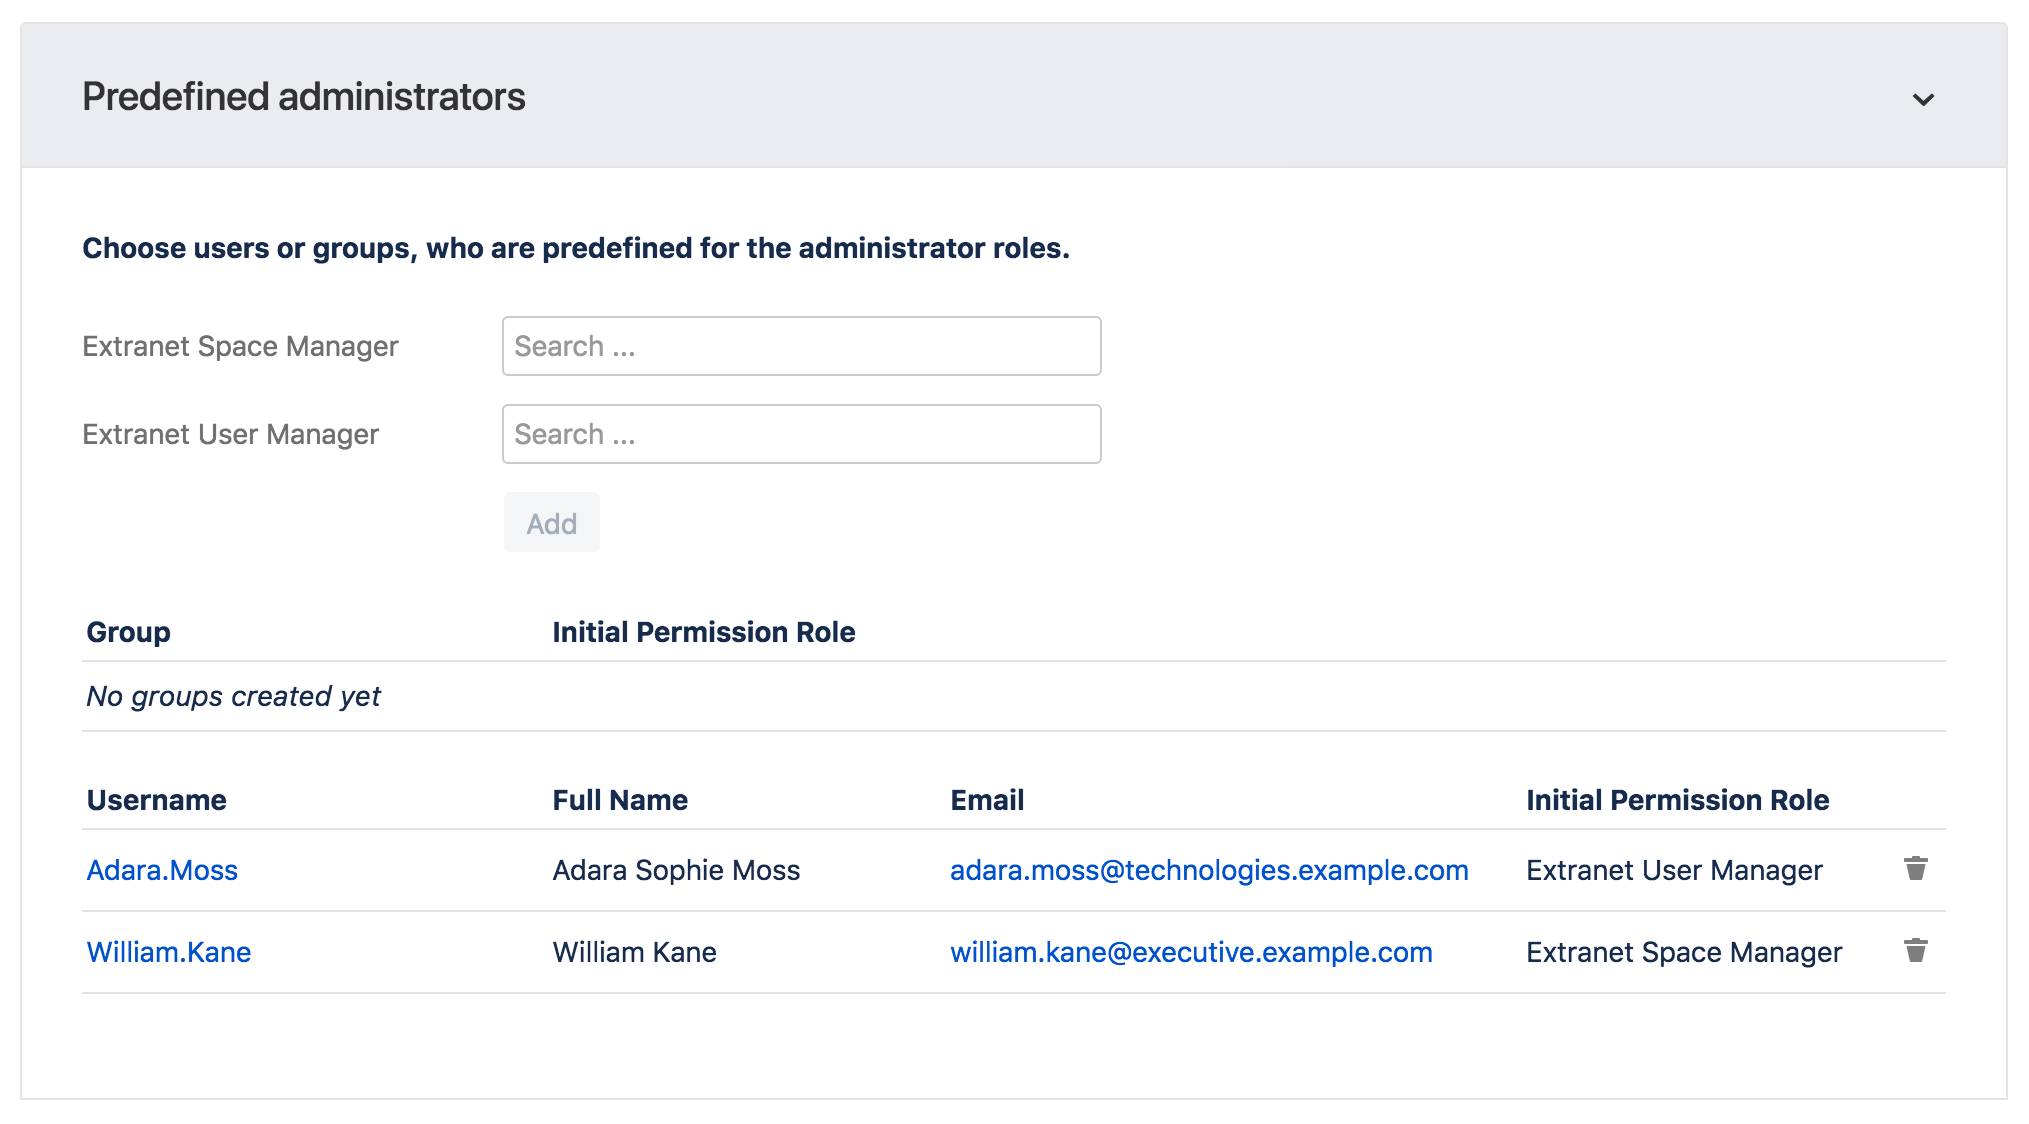 There are also predefined administrator roles without administrator permissions.